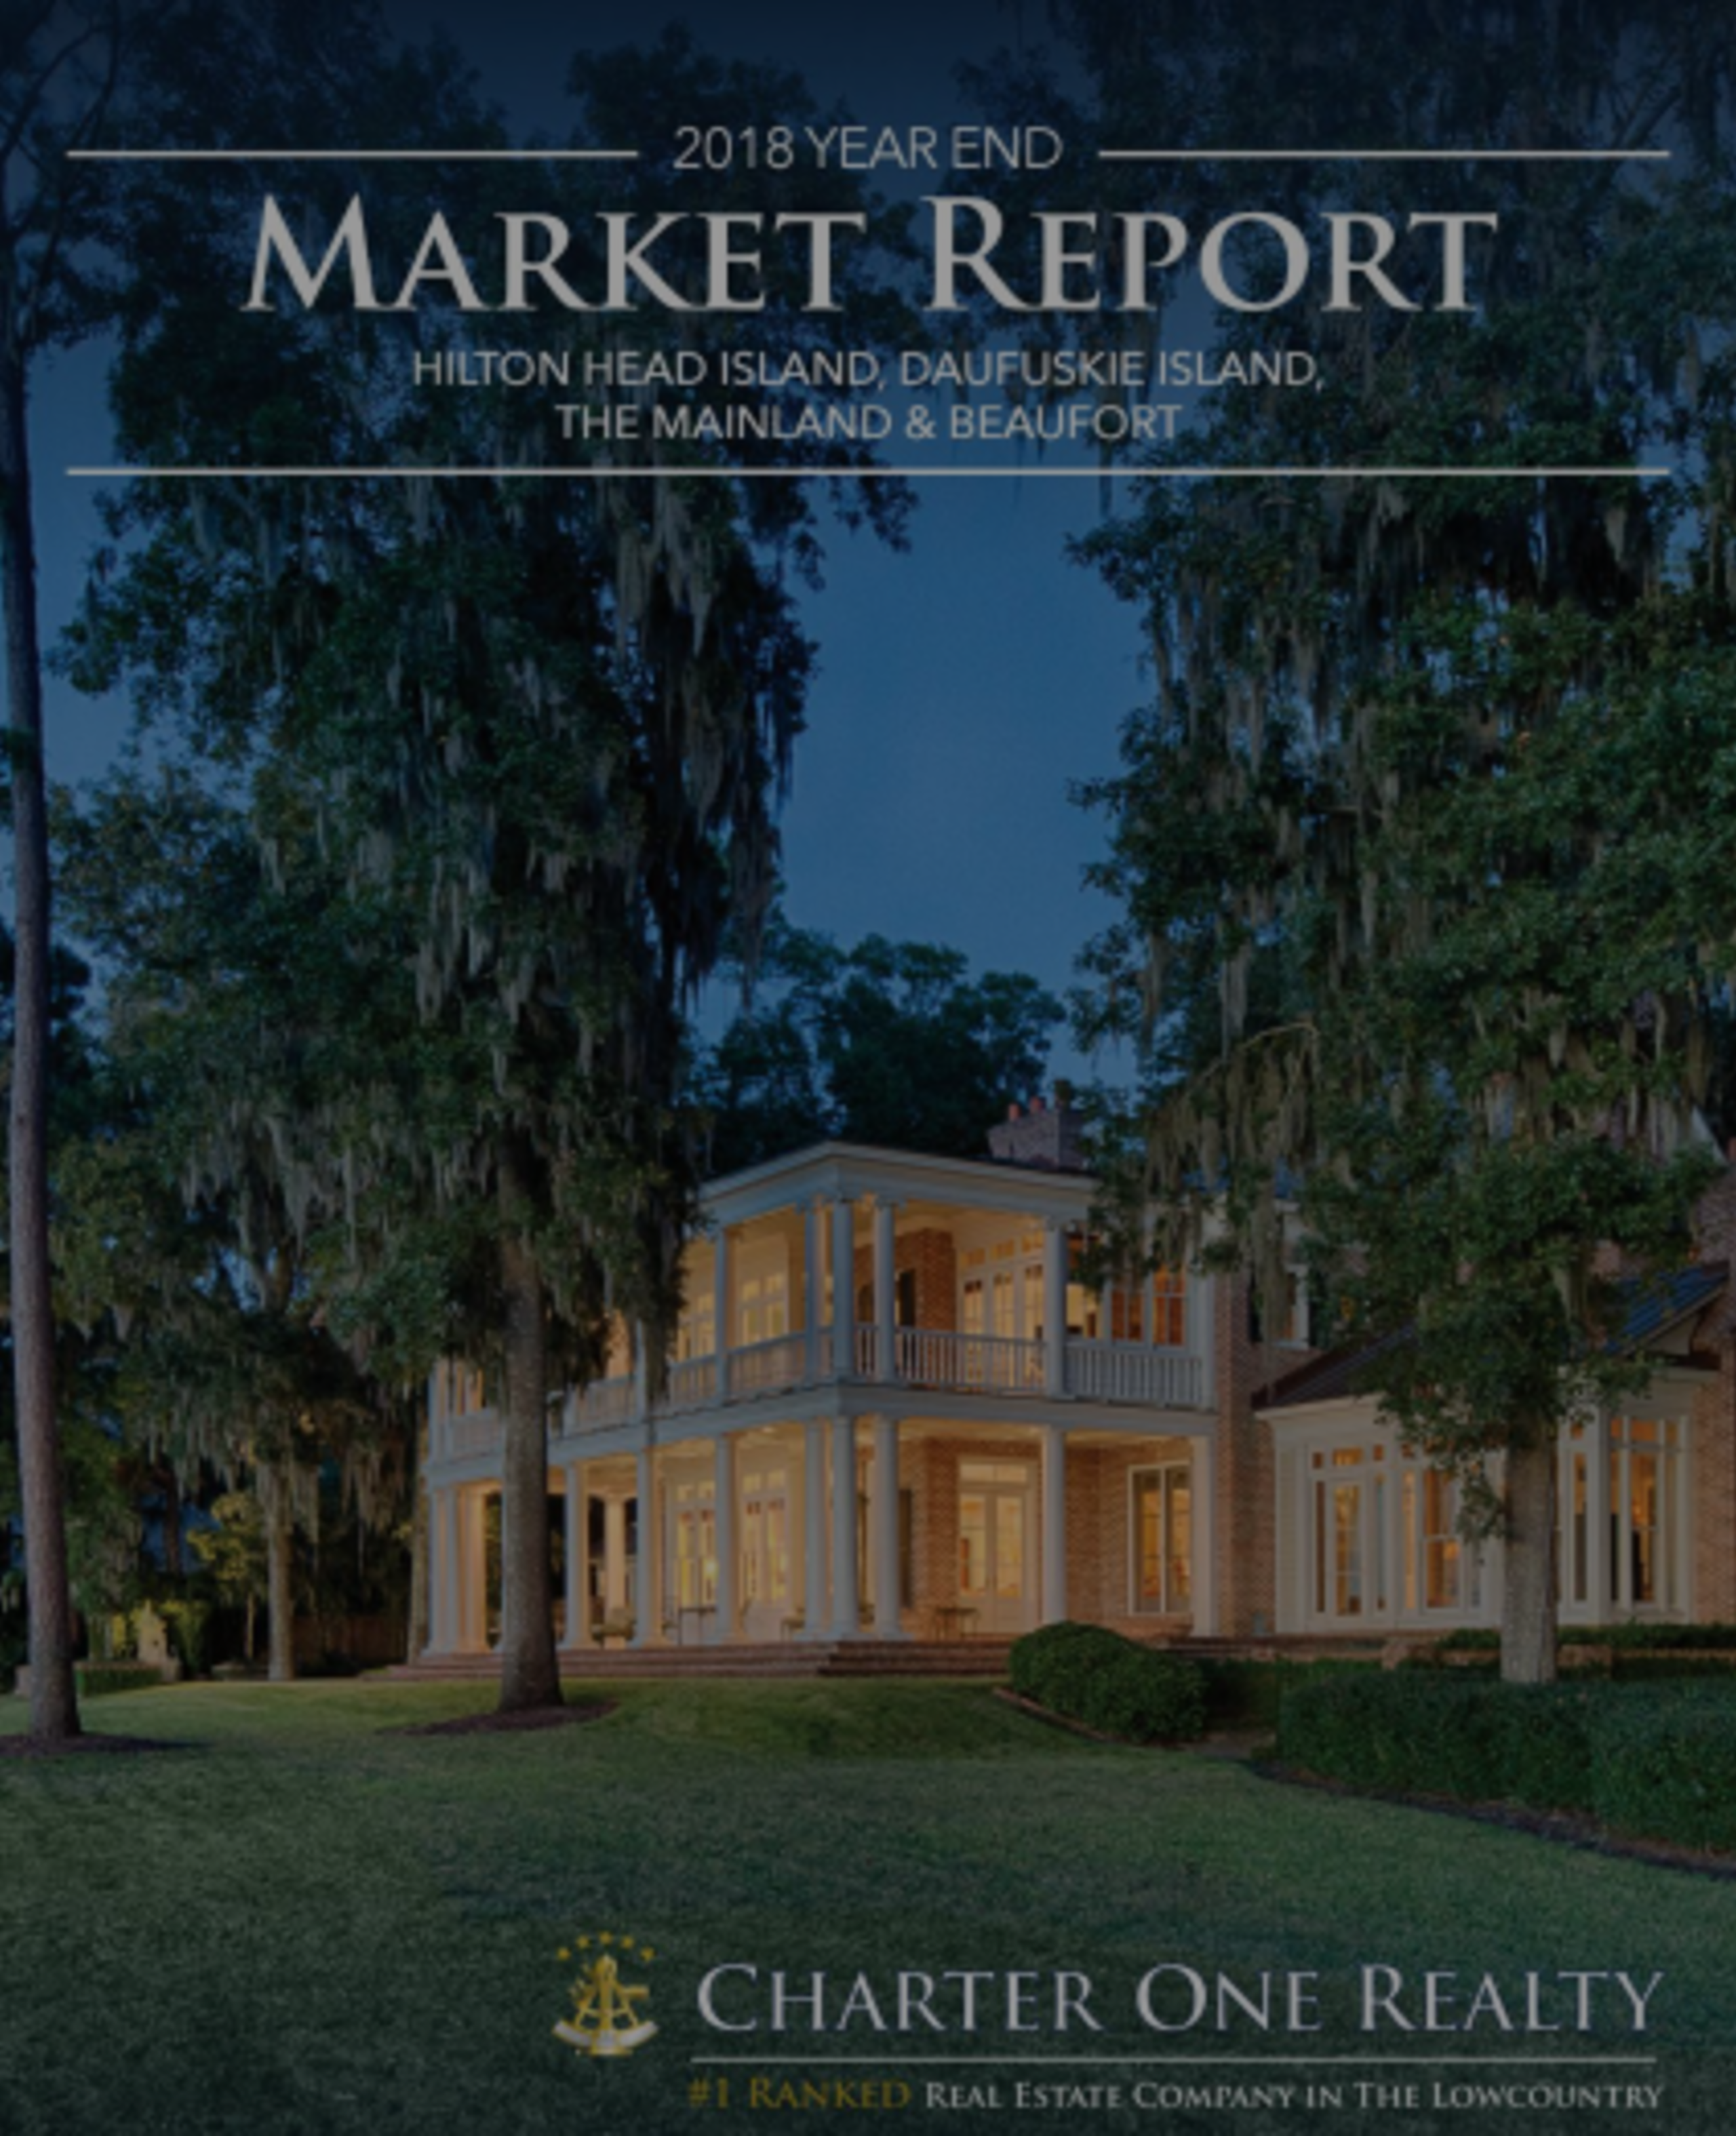 2018 Year End Market Report: Hilton Head Island, Daufuskie Island, The Mainland, & Beaufort